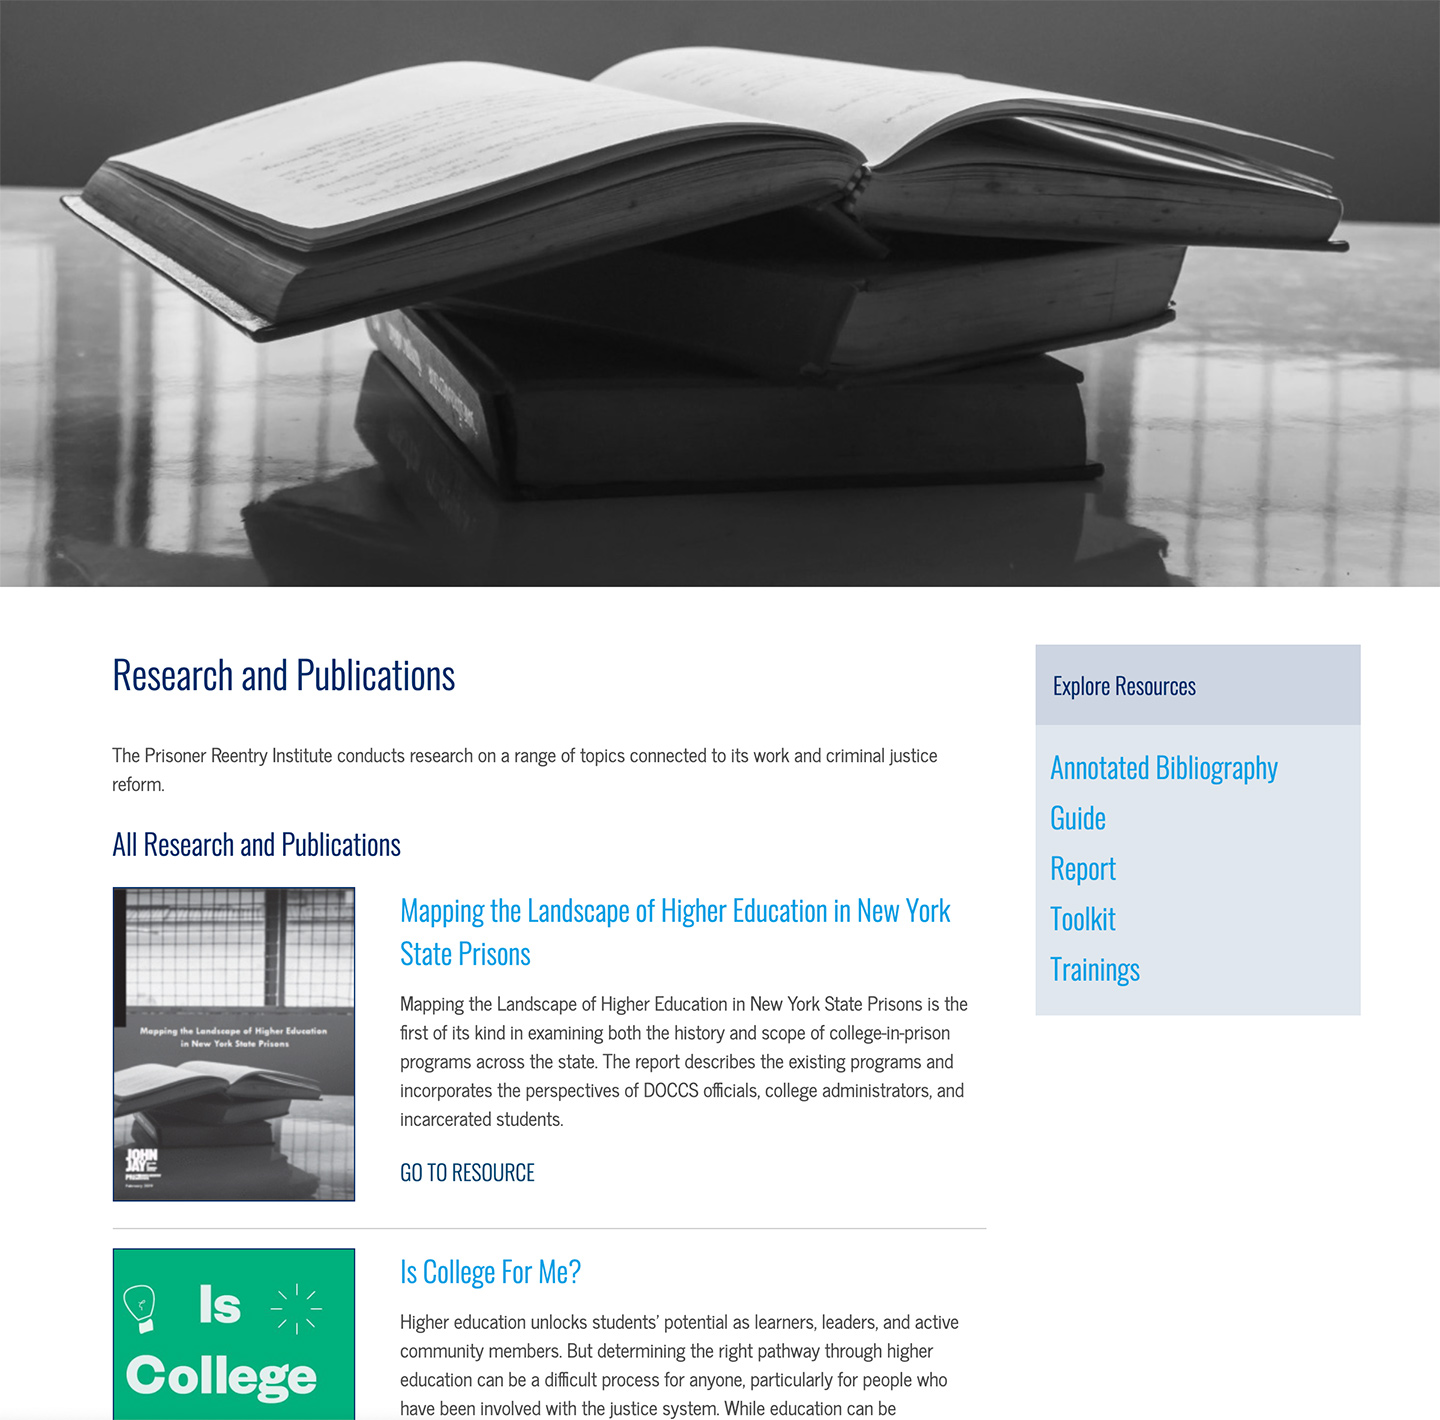 Institute for Justice and Opportunity (CUNY John Jay): John Jay Institute for Justice and Opportunity: Publications and Research